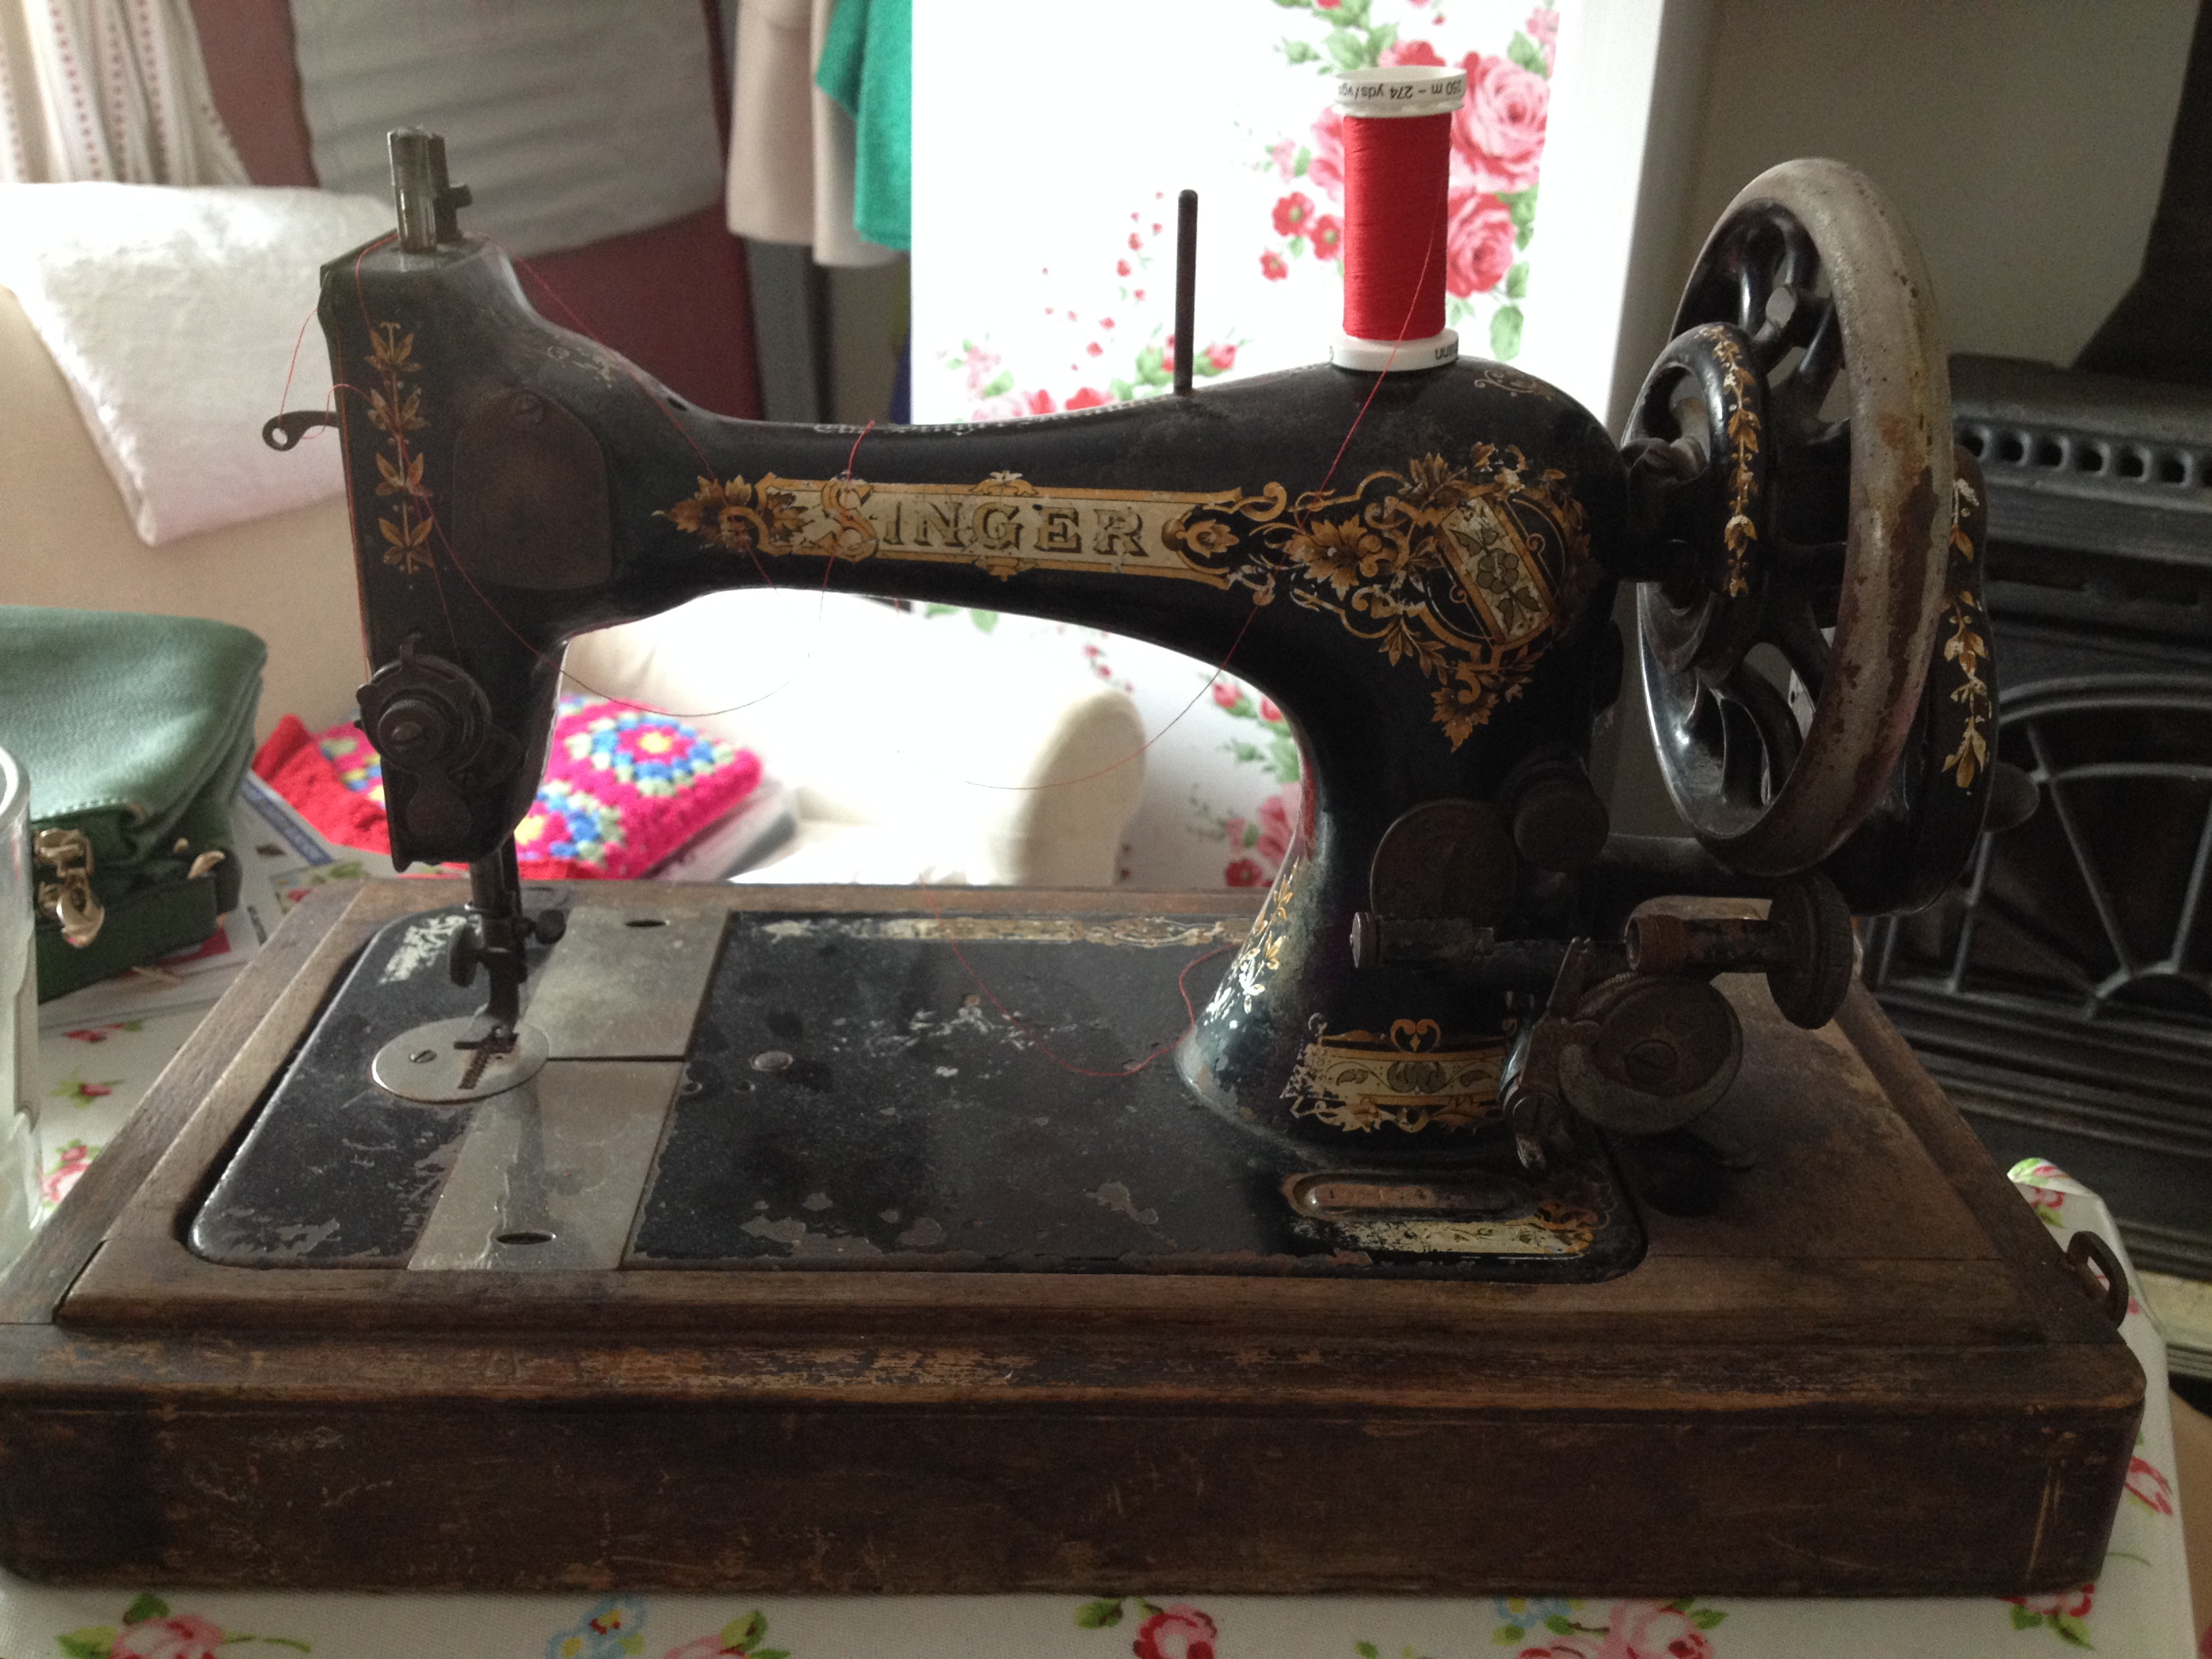 Identifying your old Sewing Machine